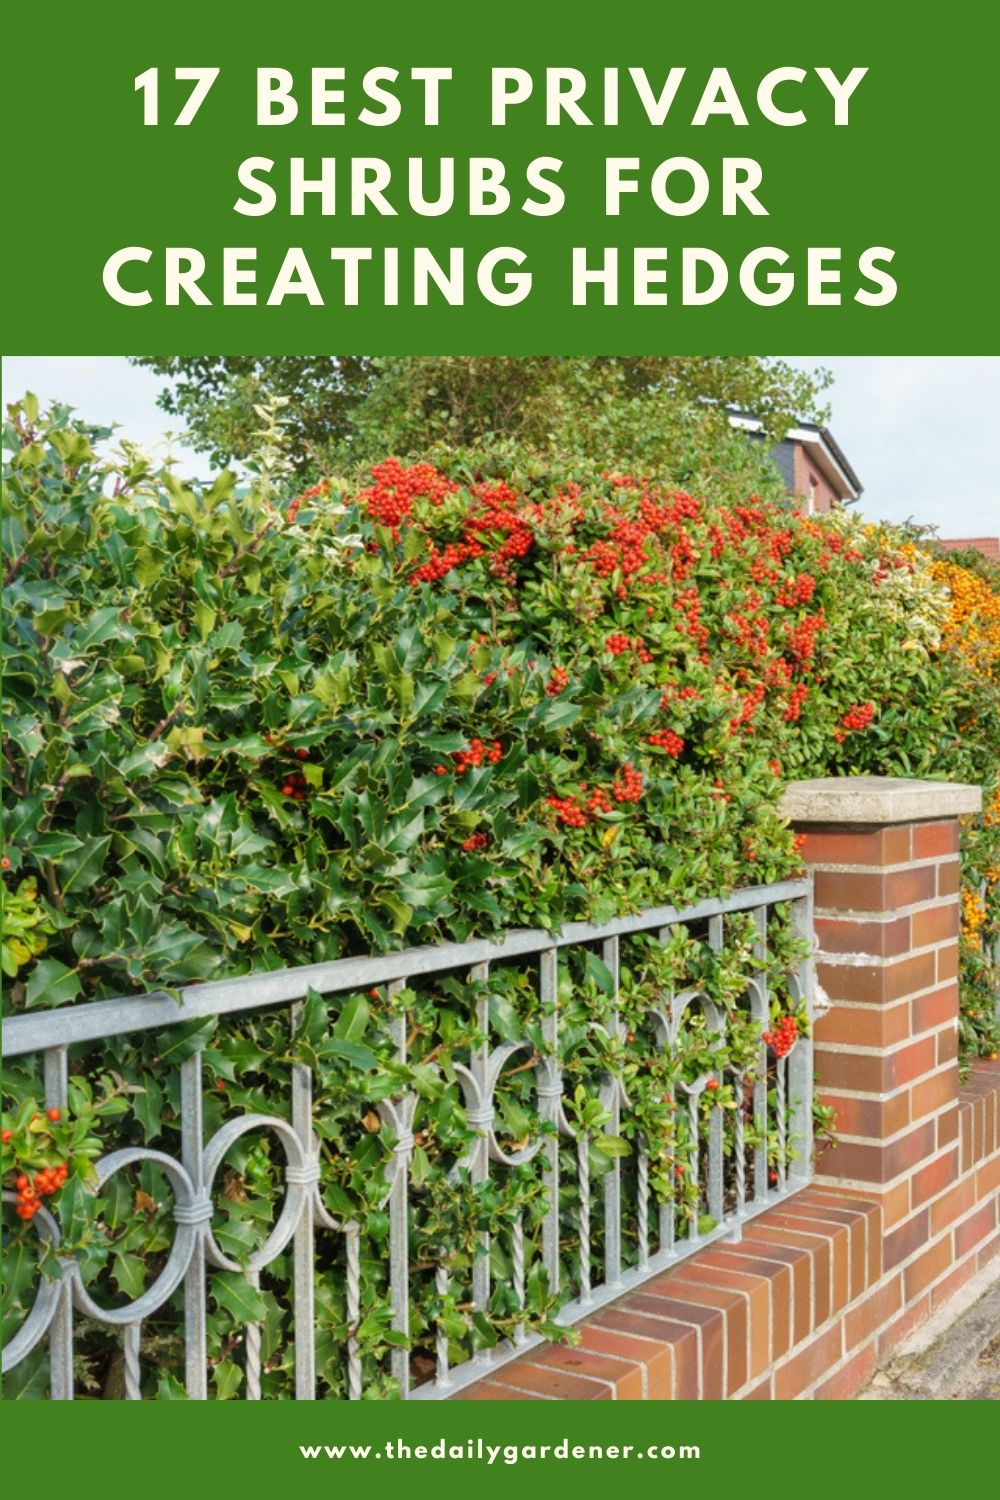 17 Best Privacy Shrubs for Creating Hedges 2